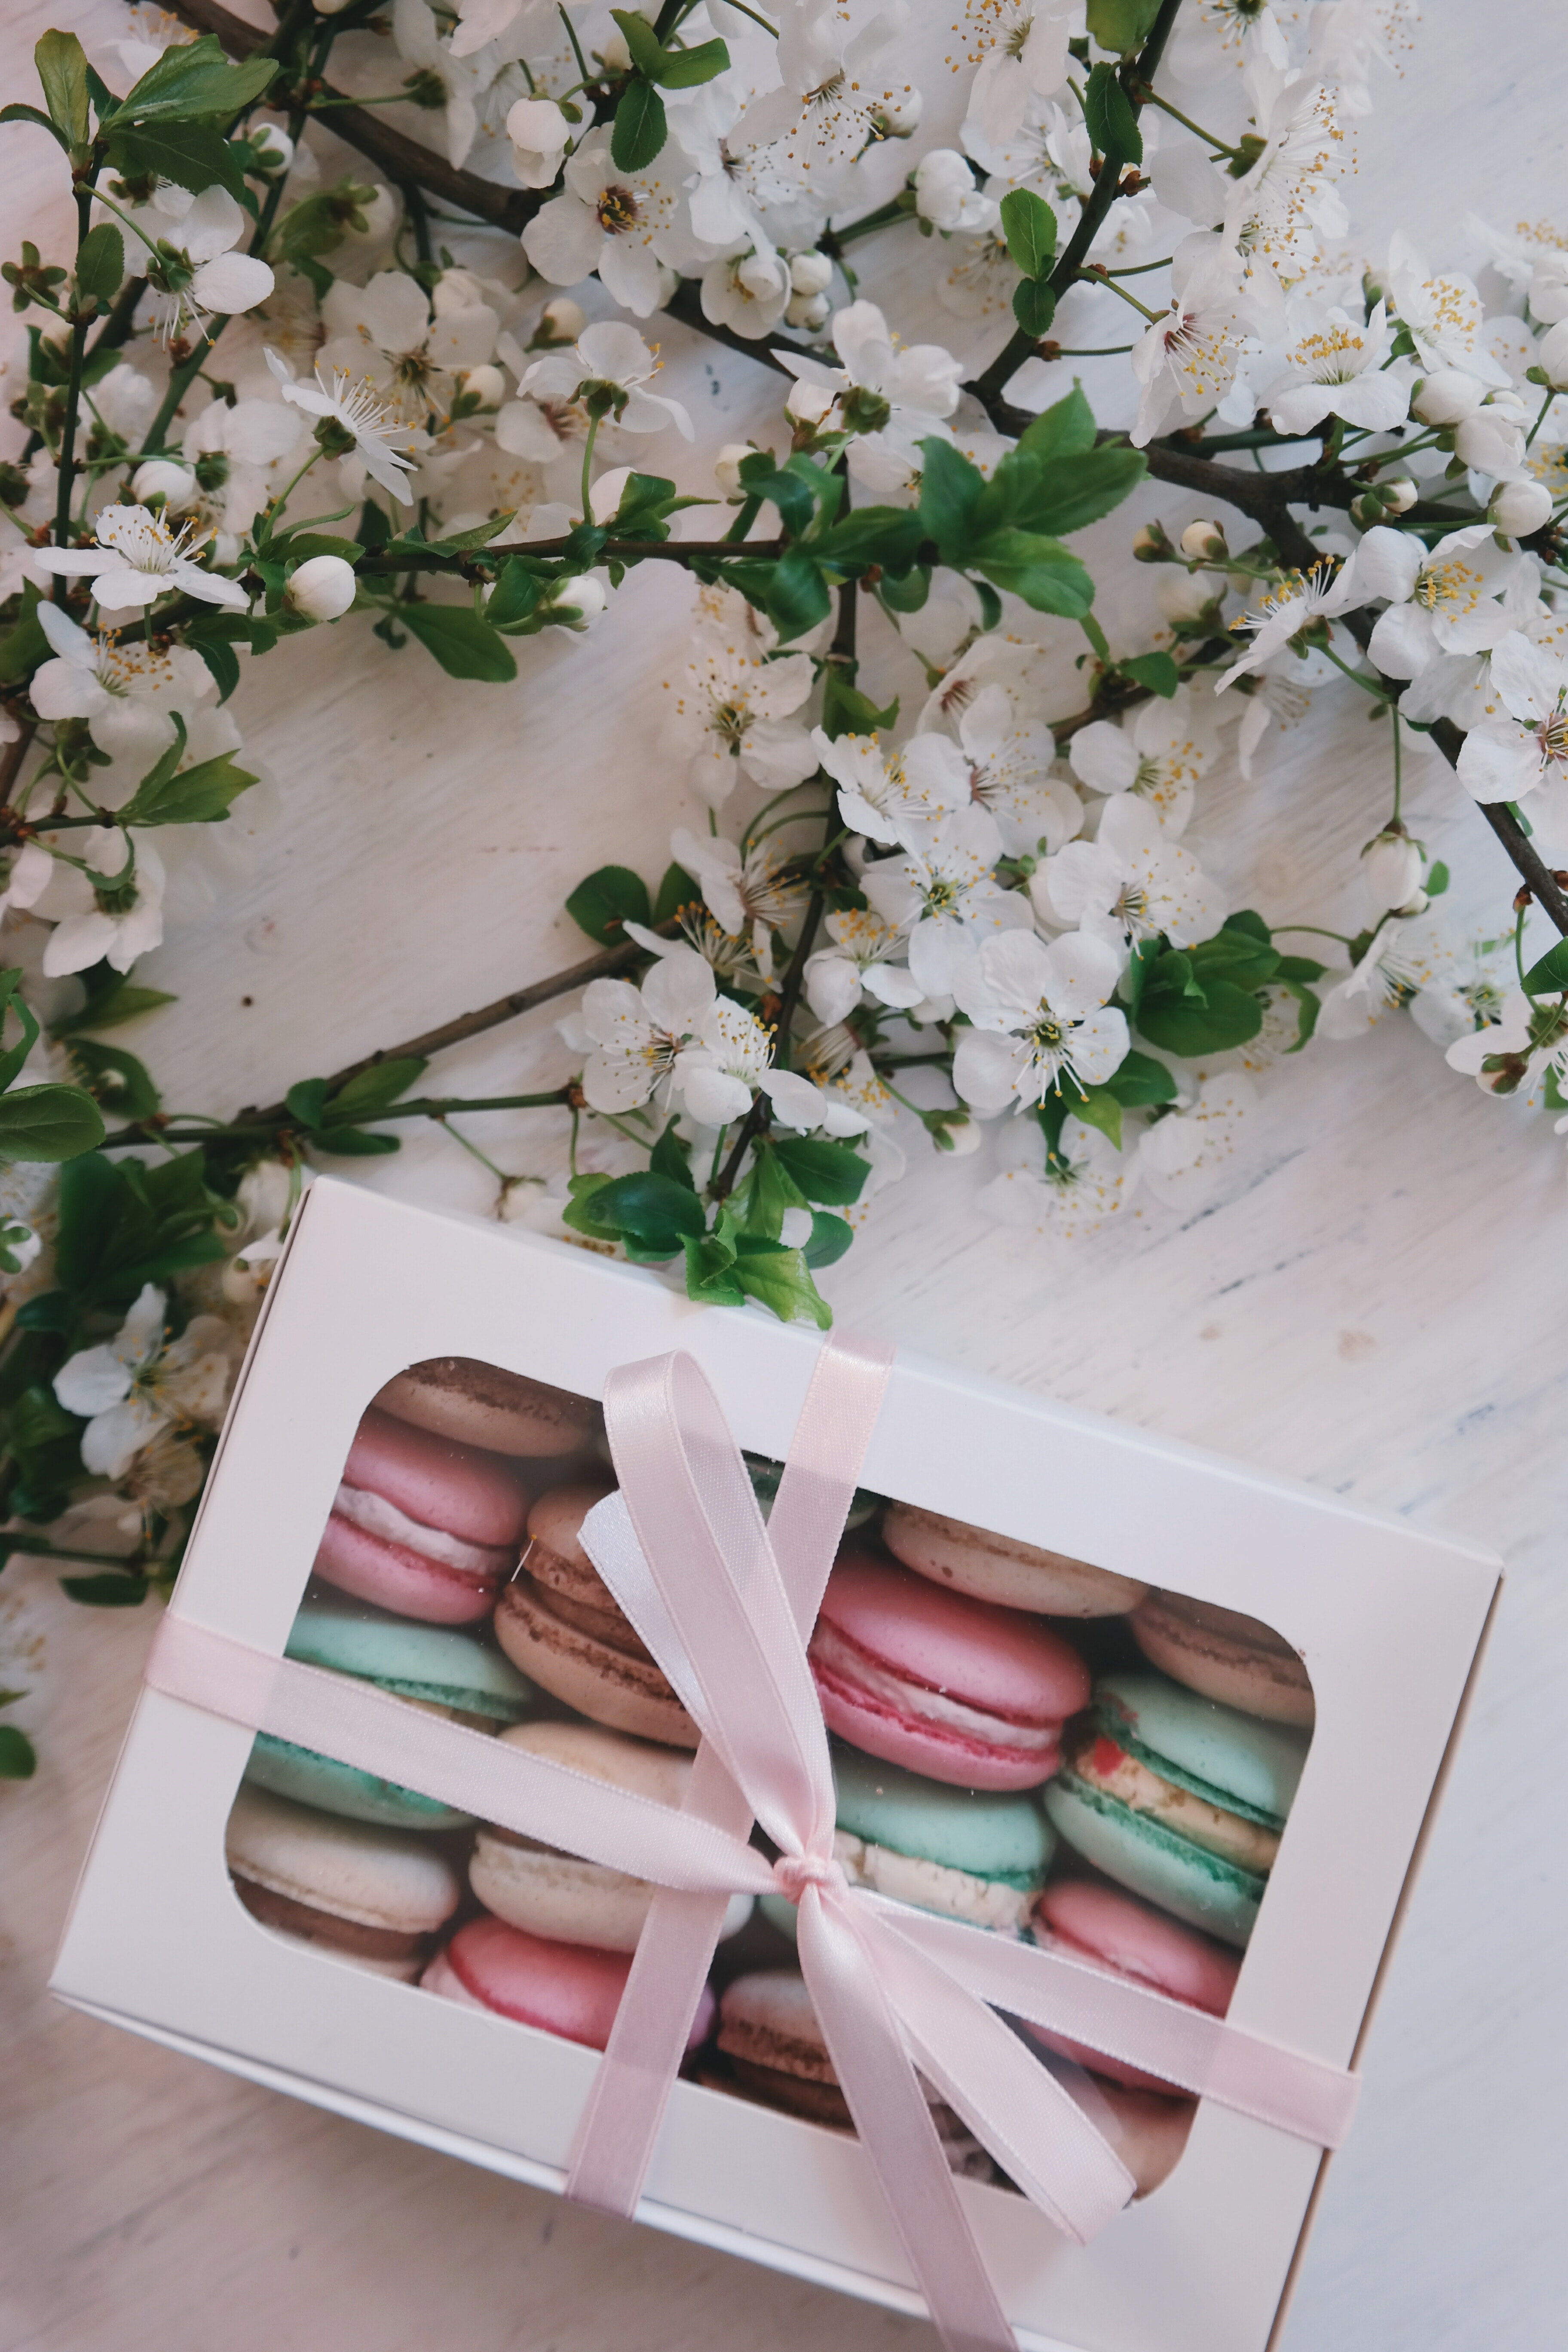 Colorful macarons in a box with a ribbon with flowers